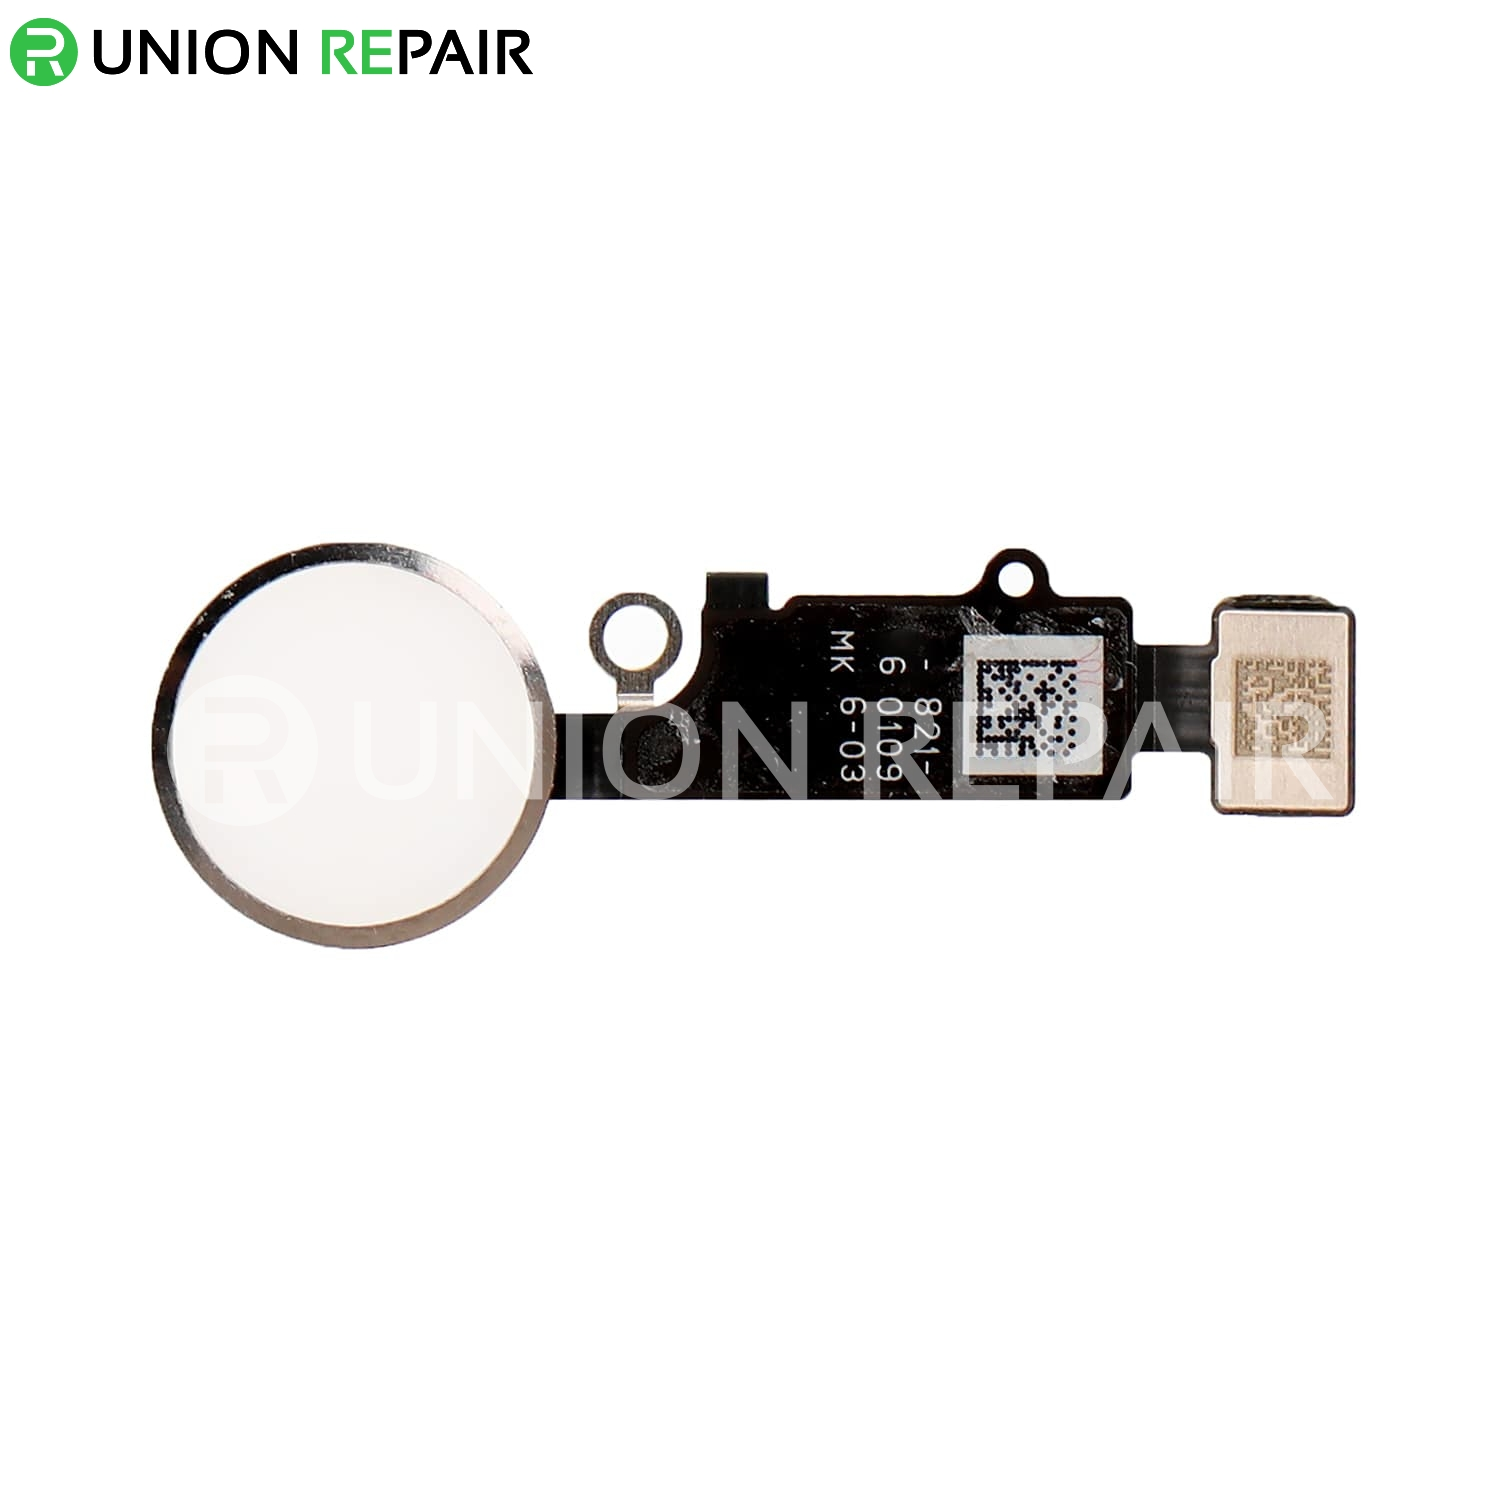 huge selection of e7184 b2278 Replacement for iPhone 8 Plus Home Button Assembly - Silver